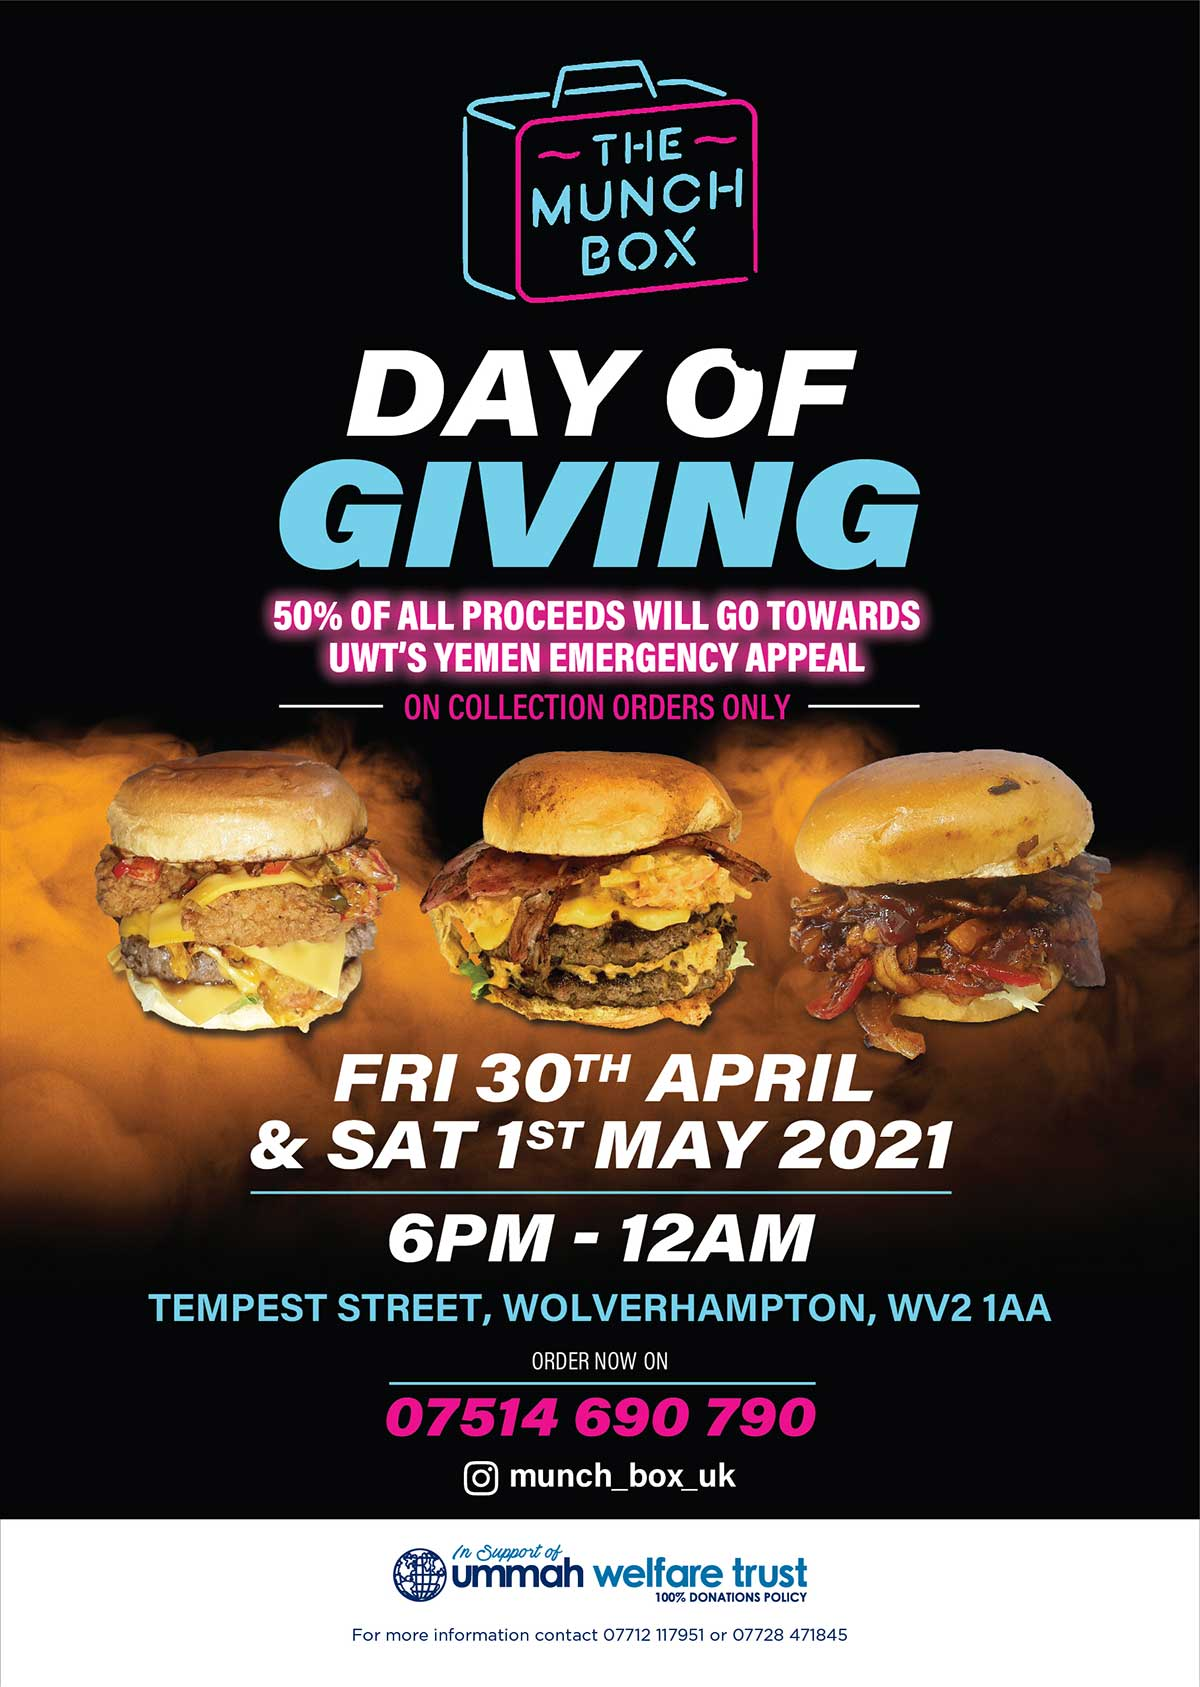 The Munch Box Charity Day of Giving Wolverhampton